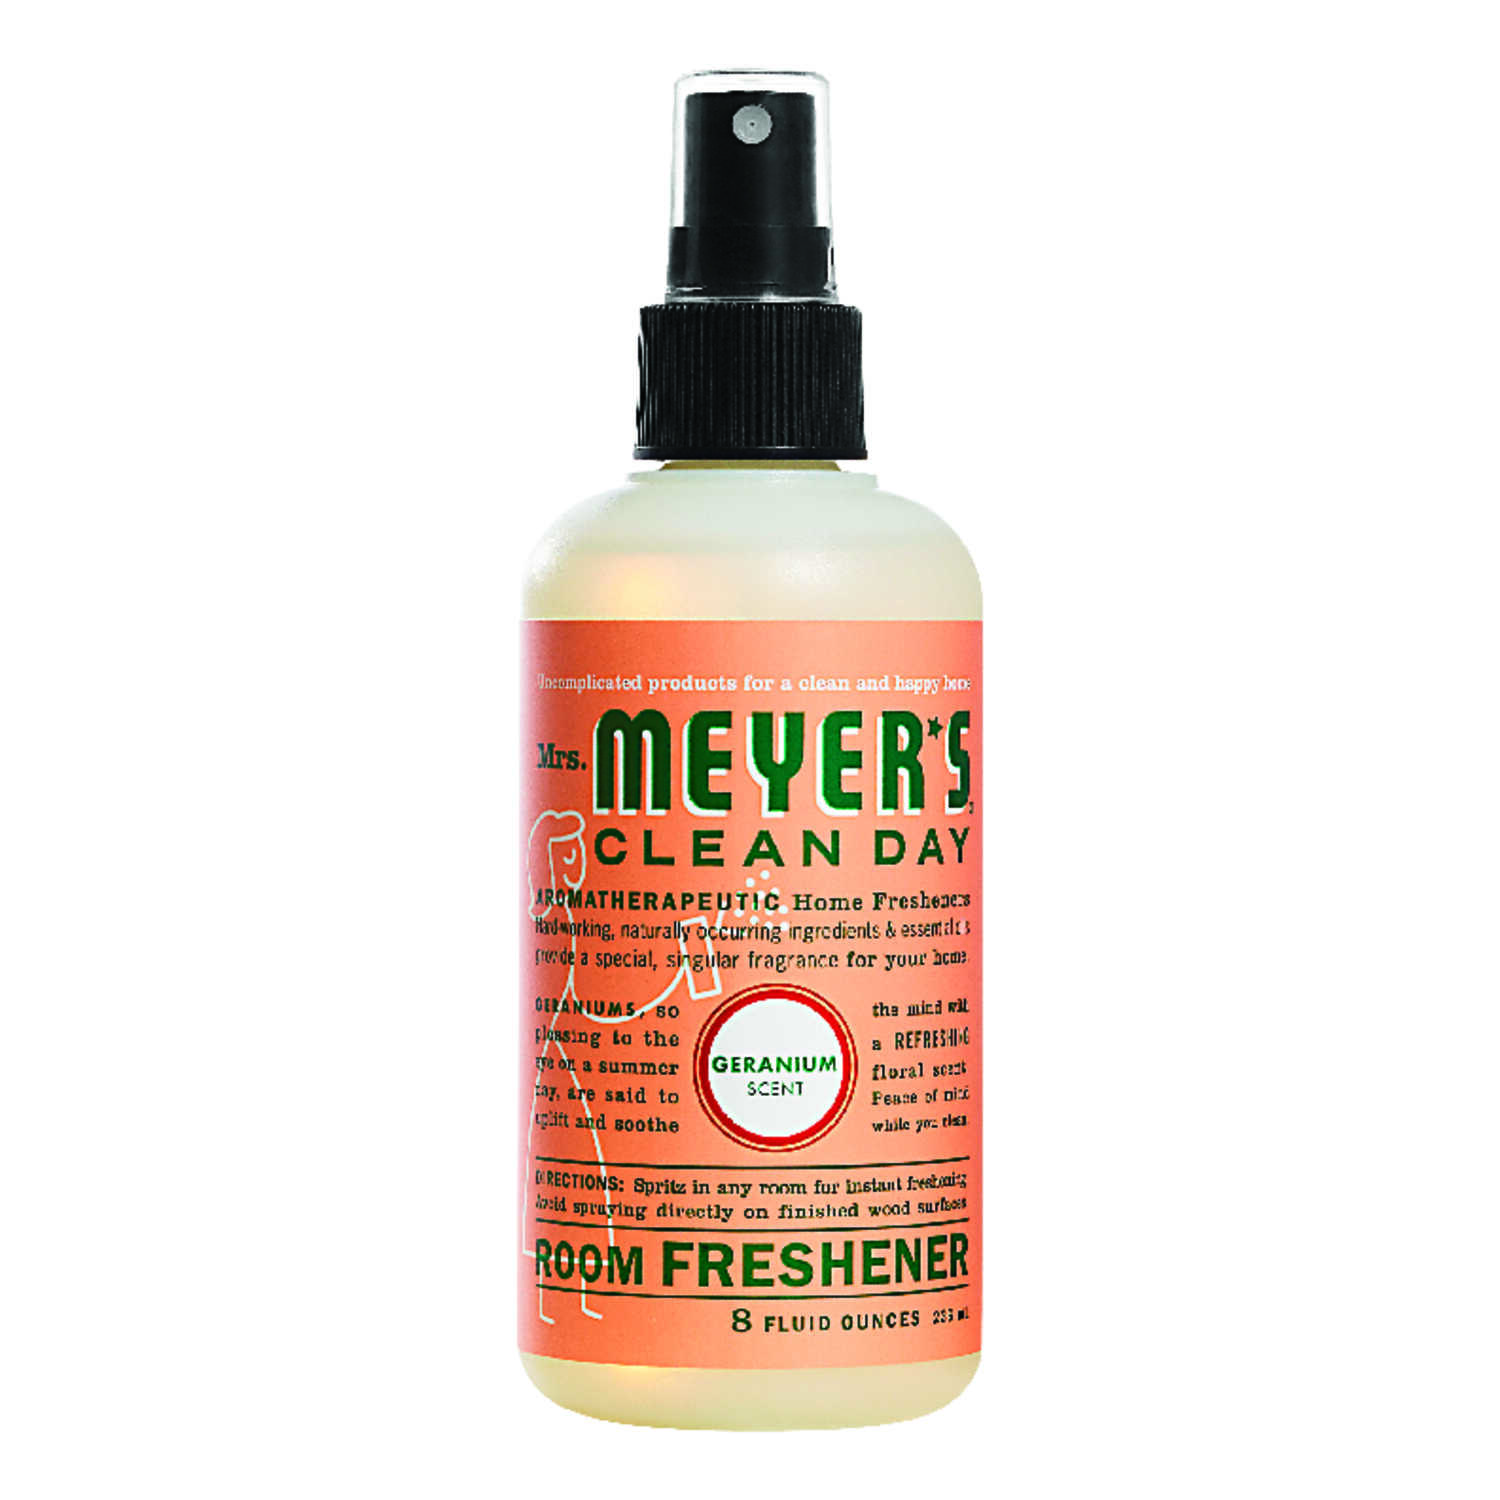 Mrs. Meyer's  Clean Day  Geranium Scent Air Freshener Spray  8 oz. Liquid